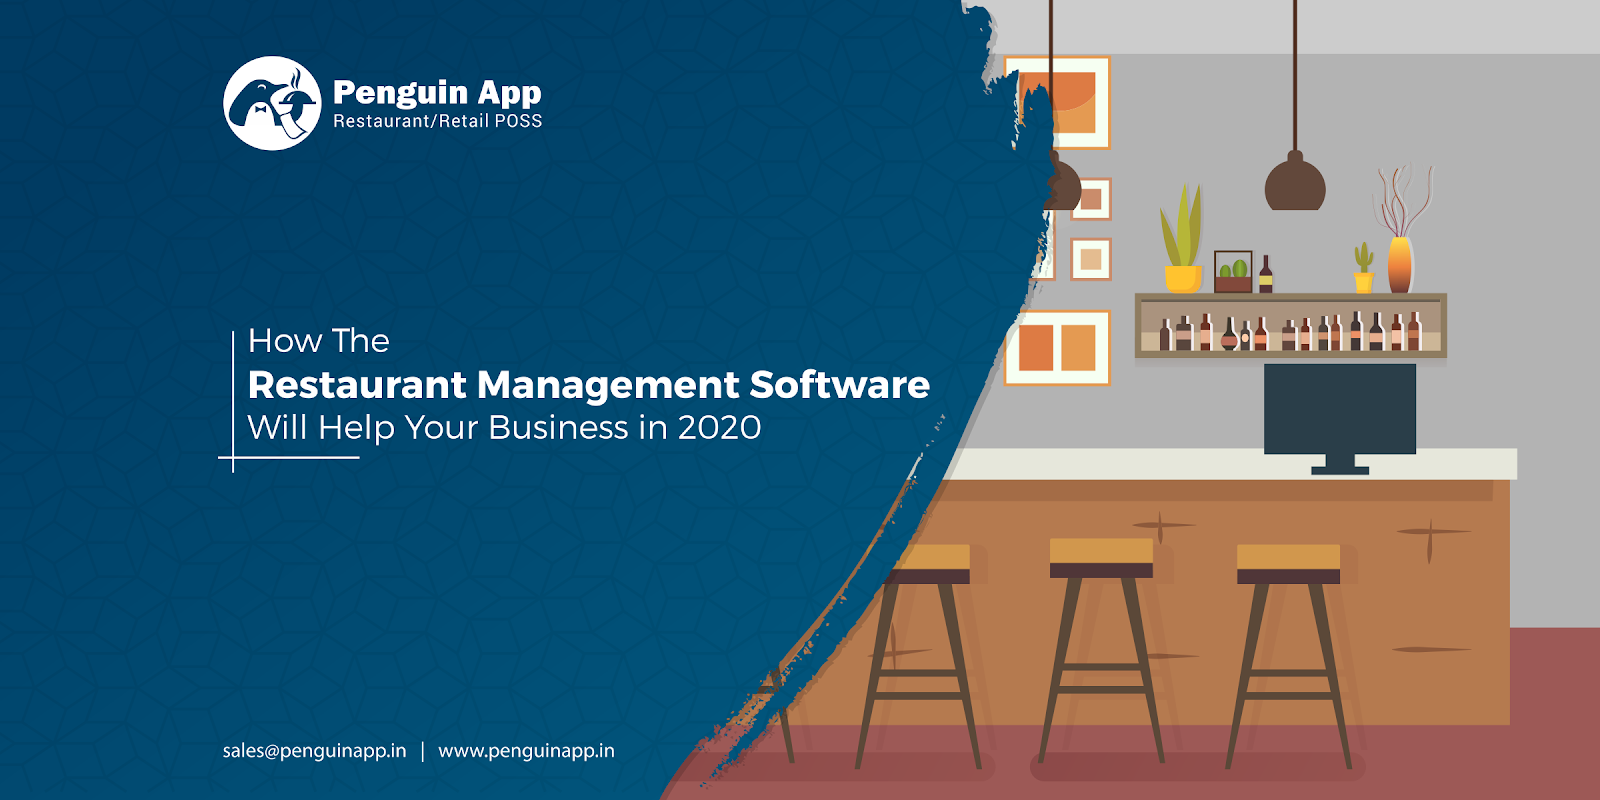 How Can Restaurant Management Software Mature Your Business in 2020?